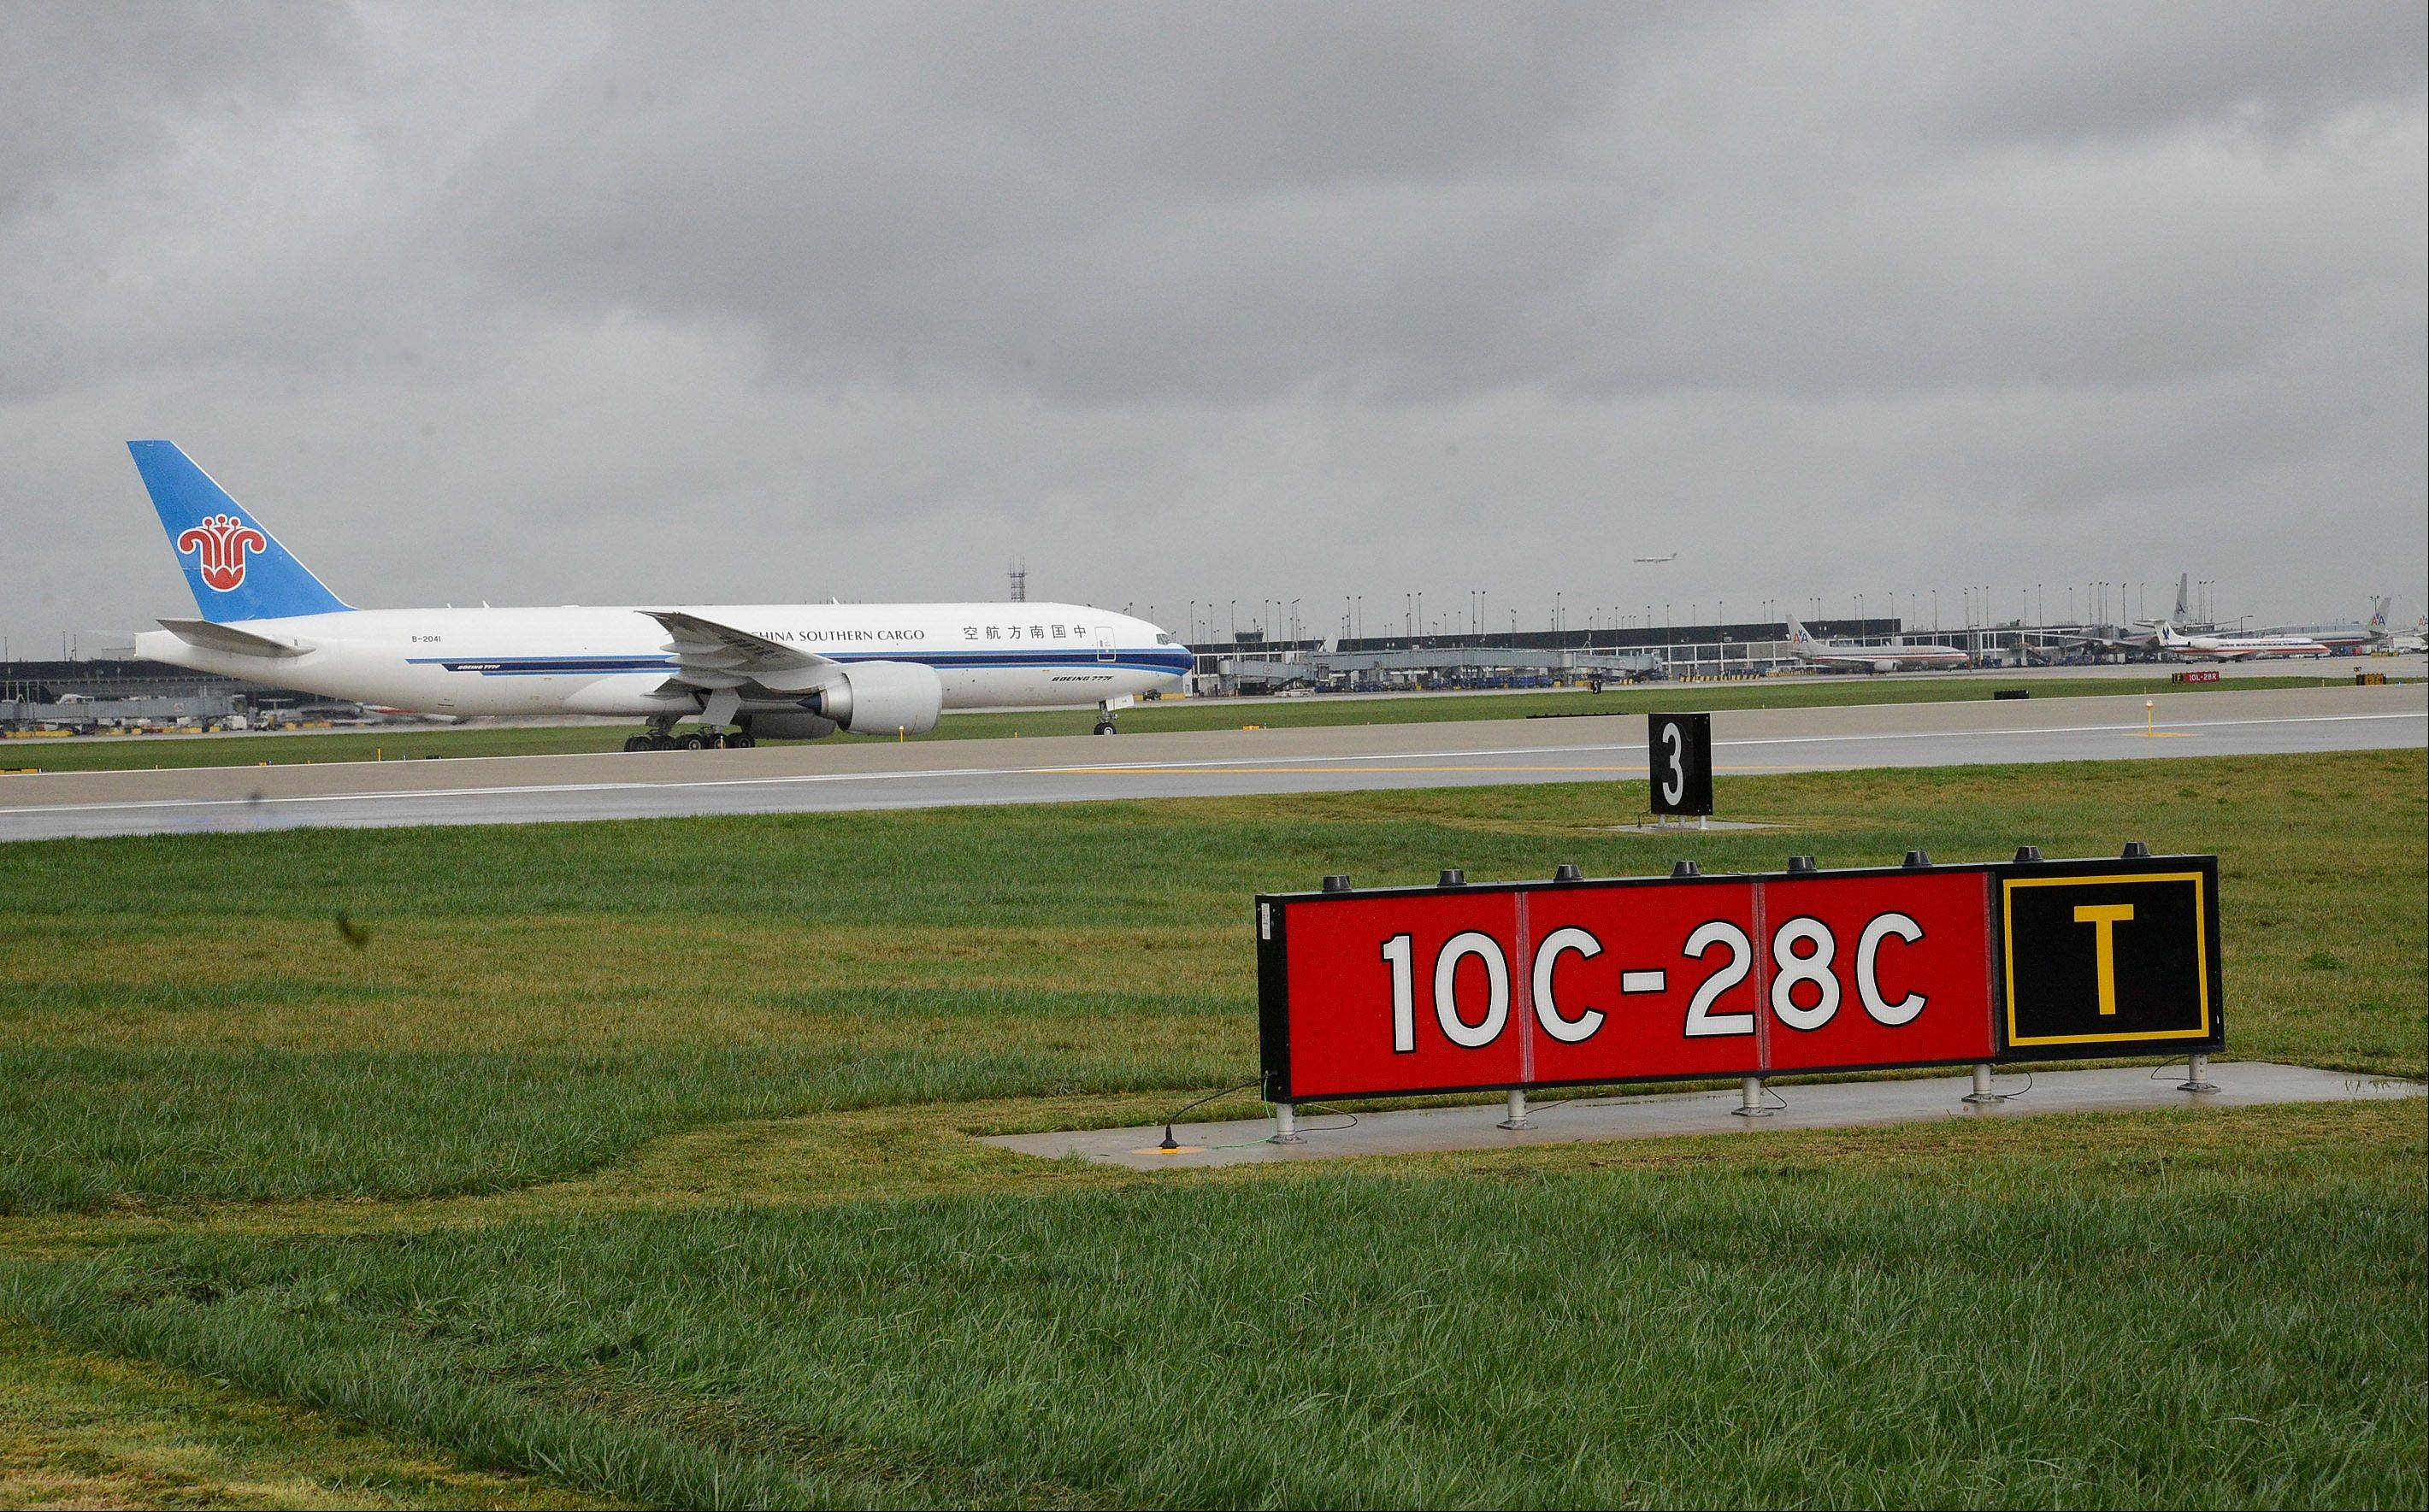 New O'Hare runway: Which suburbs get noise now?